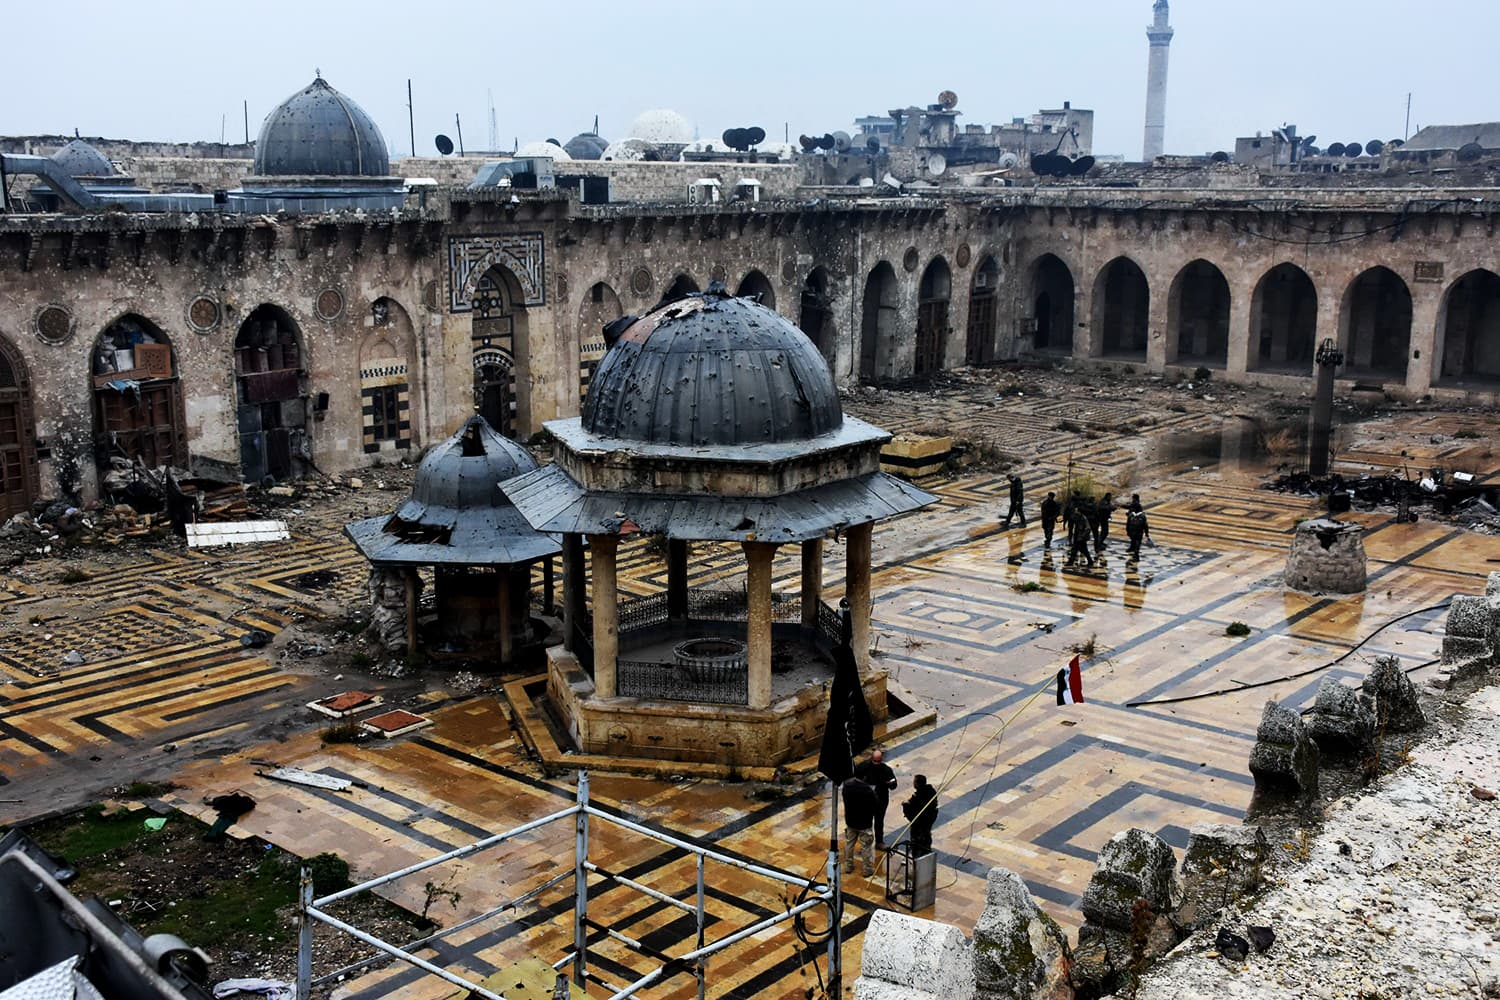 Syrian pro-government forces walk in the ancient Umayyad mosque in the old city of Aleppo after they captured the area in the eastern part of the war torn city on December 13, 2016. ─ AFP